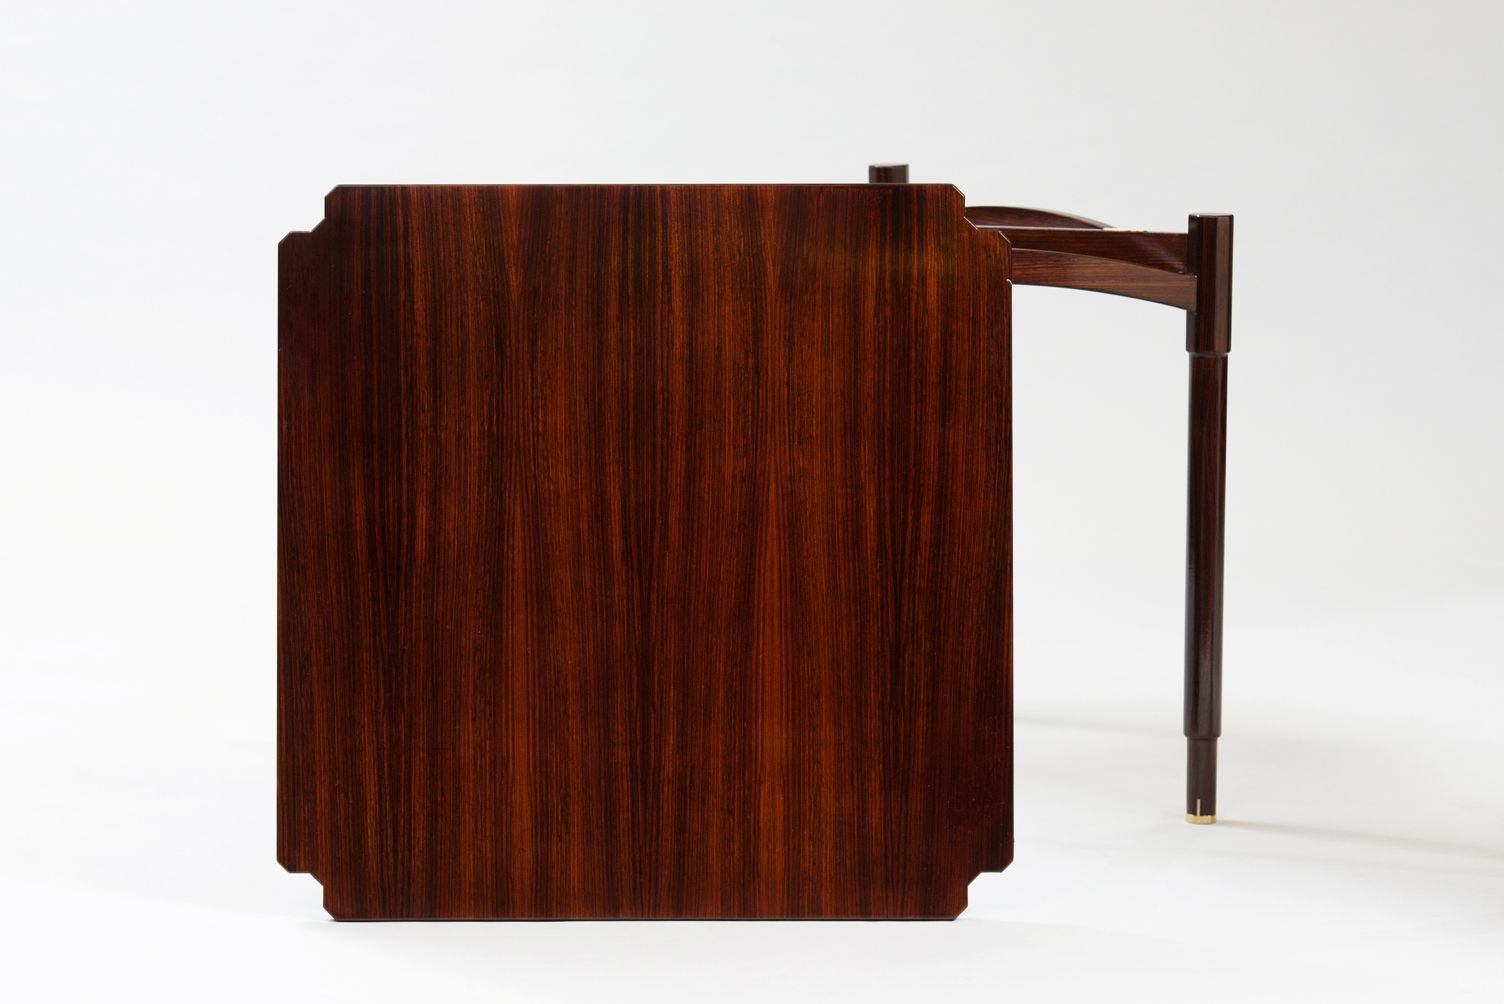 Italian Rosewood Card Table 3. Previous